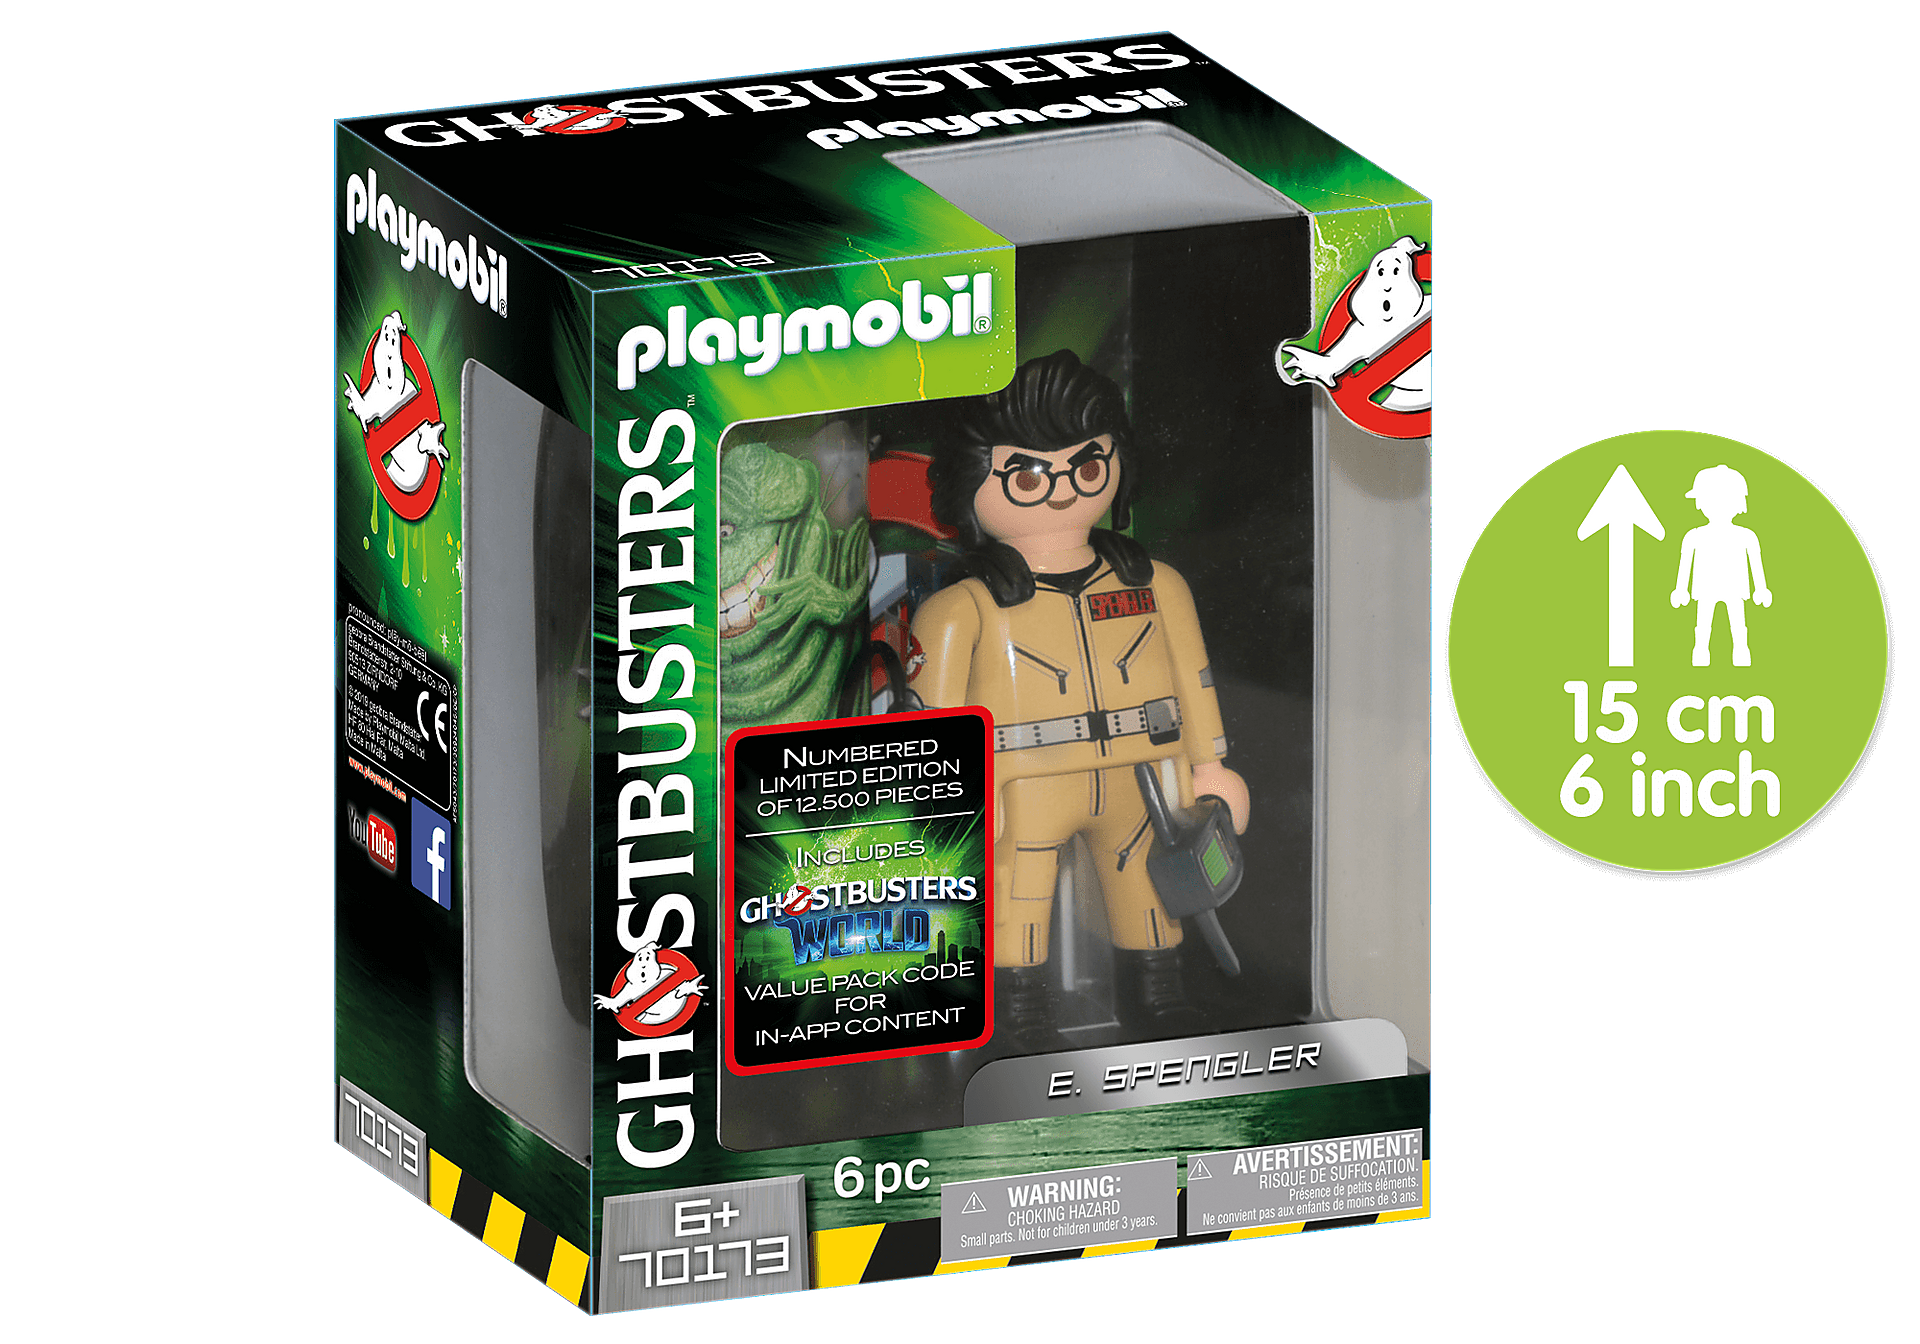 Playmobil - Ghostbusters TM Collection Figure E. Spengler (70173)